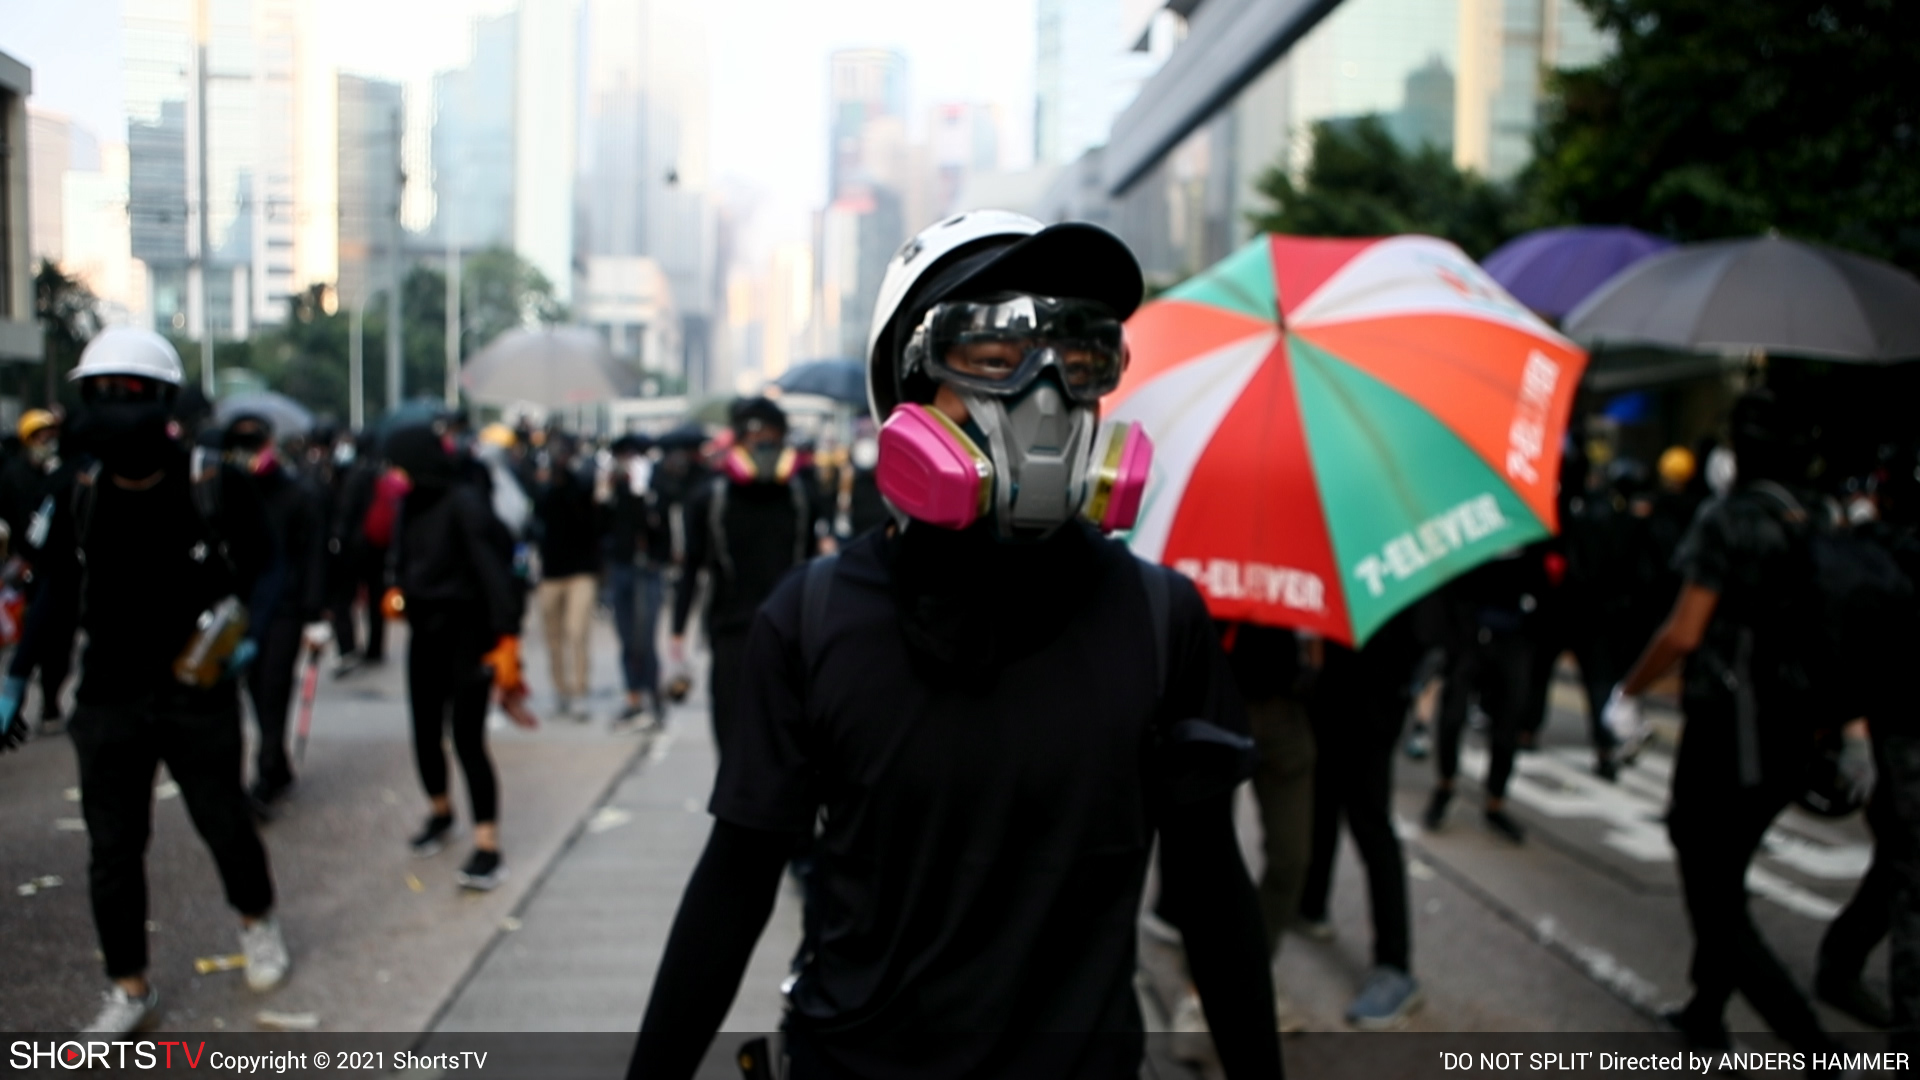 A group of people outside in the streets. One person clearly visible is wearing a gas mask.